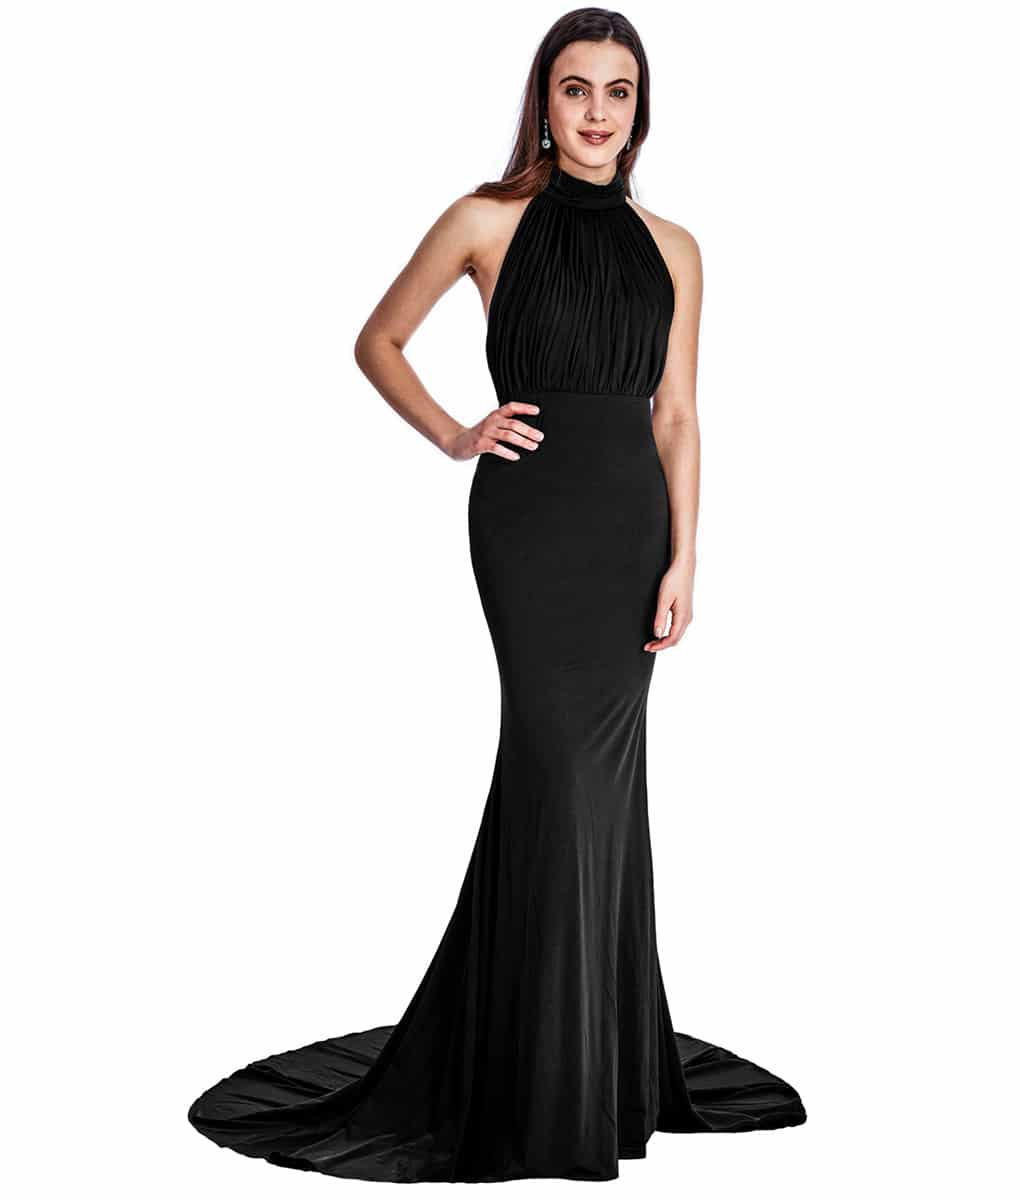 City Goddess - Black High-Neck Gown | Alila Boutique